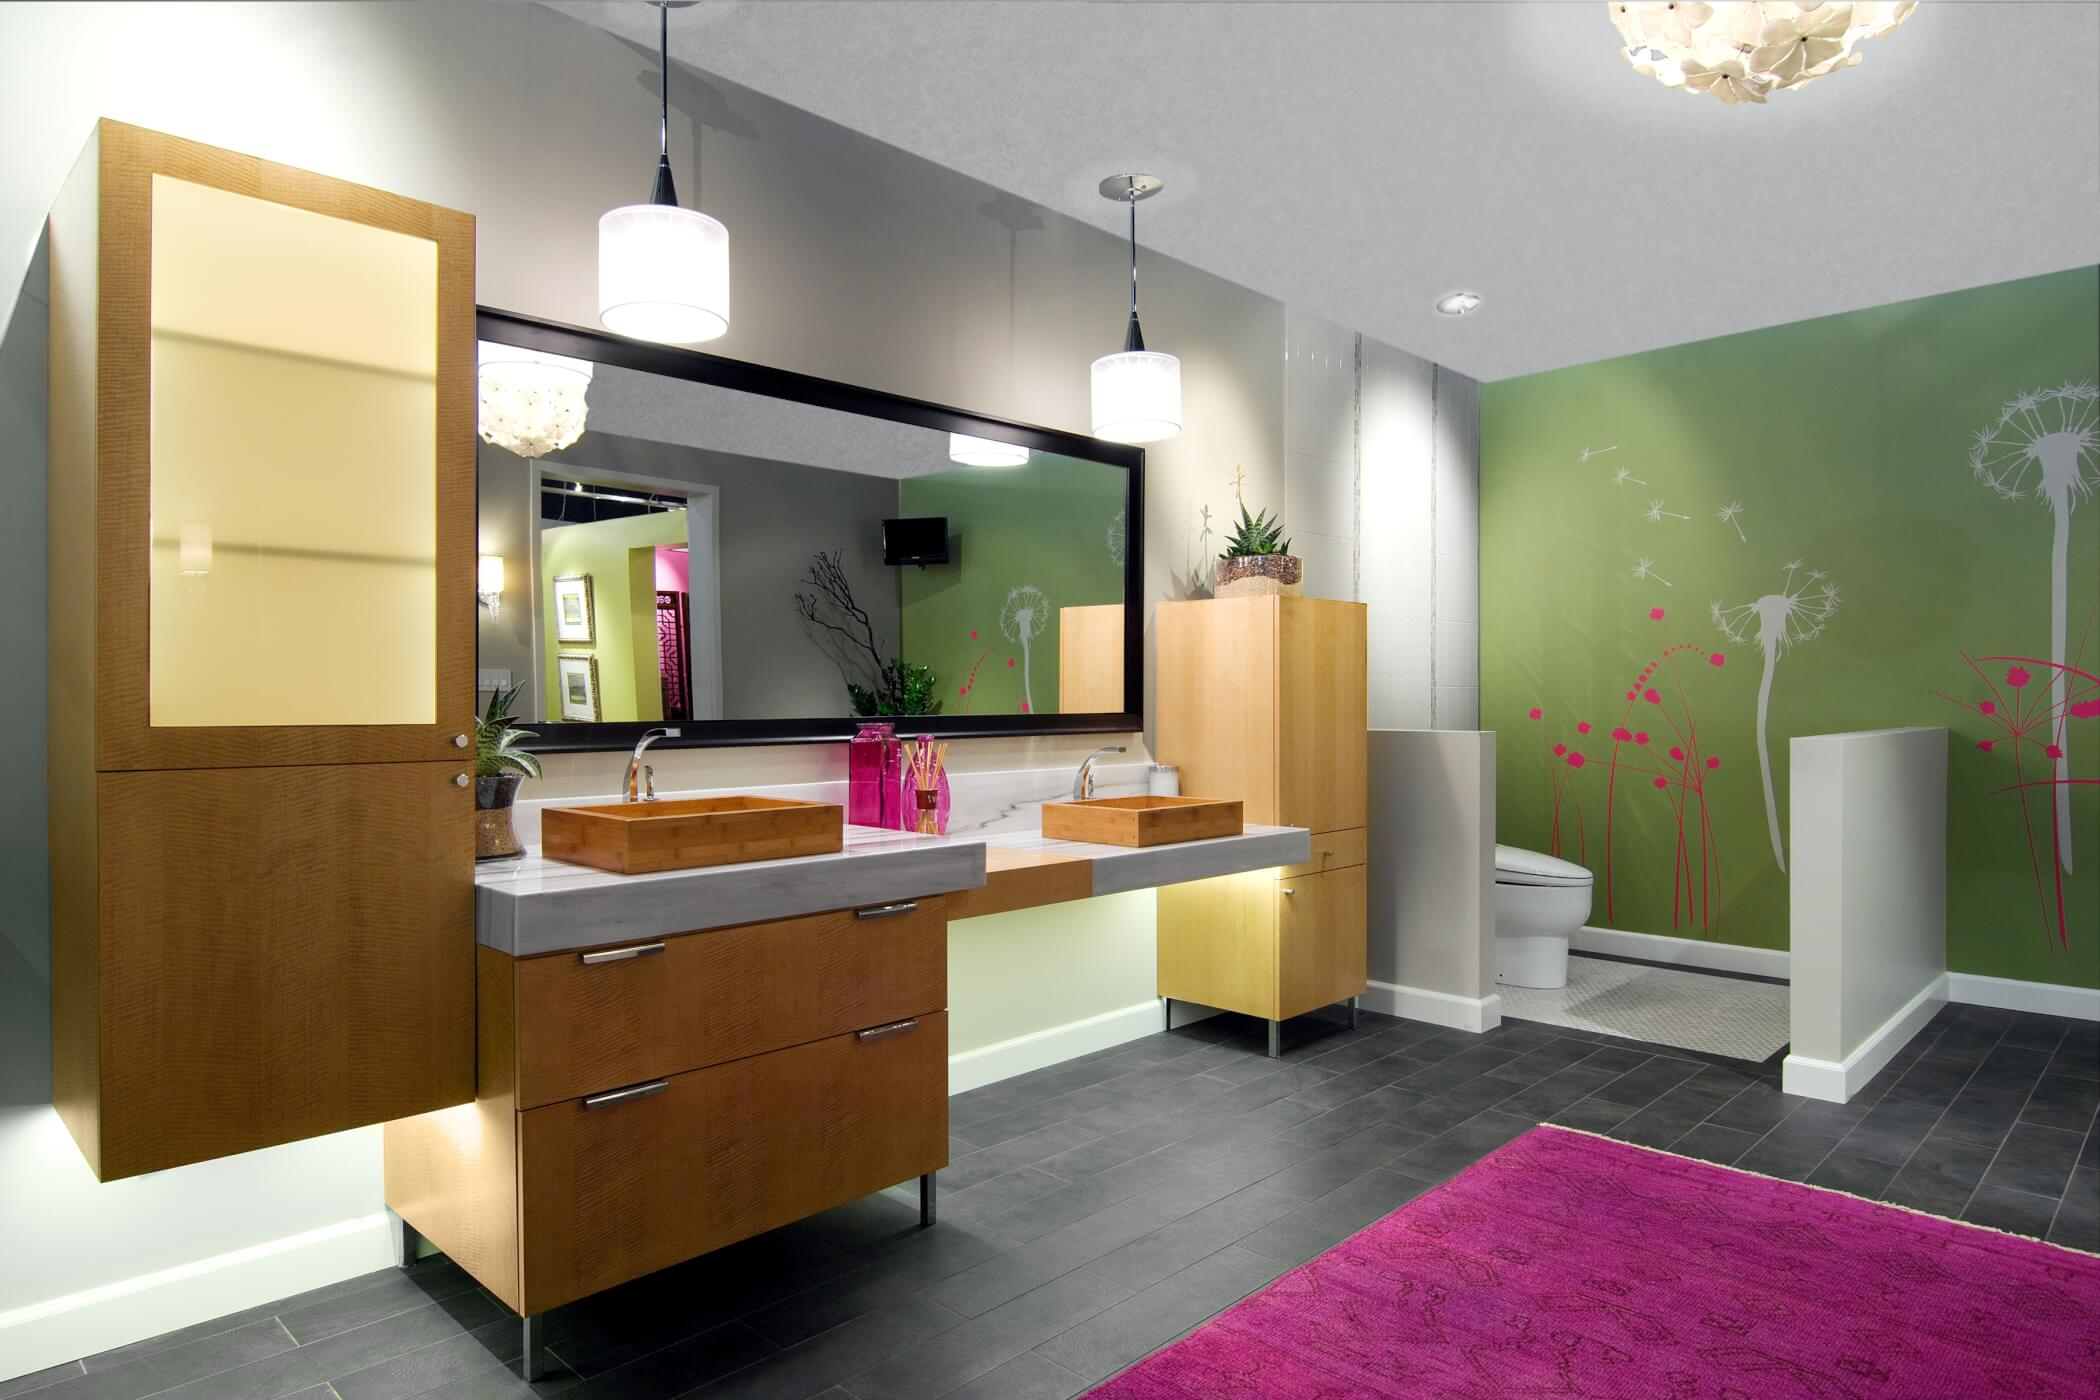 Designing A Safe Bathroom Remodel Sea Pointe Construction